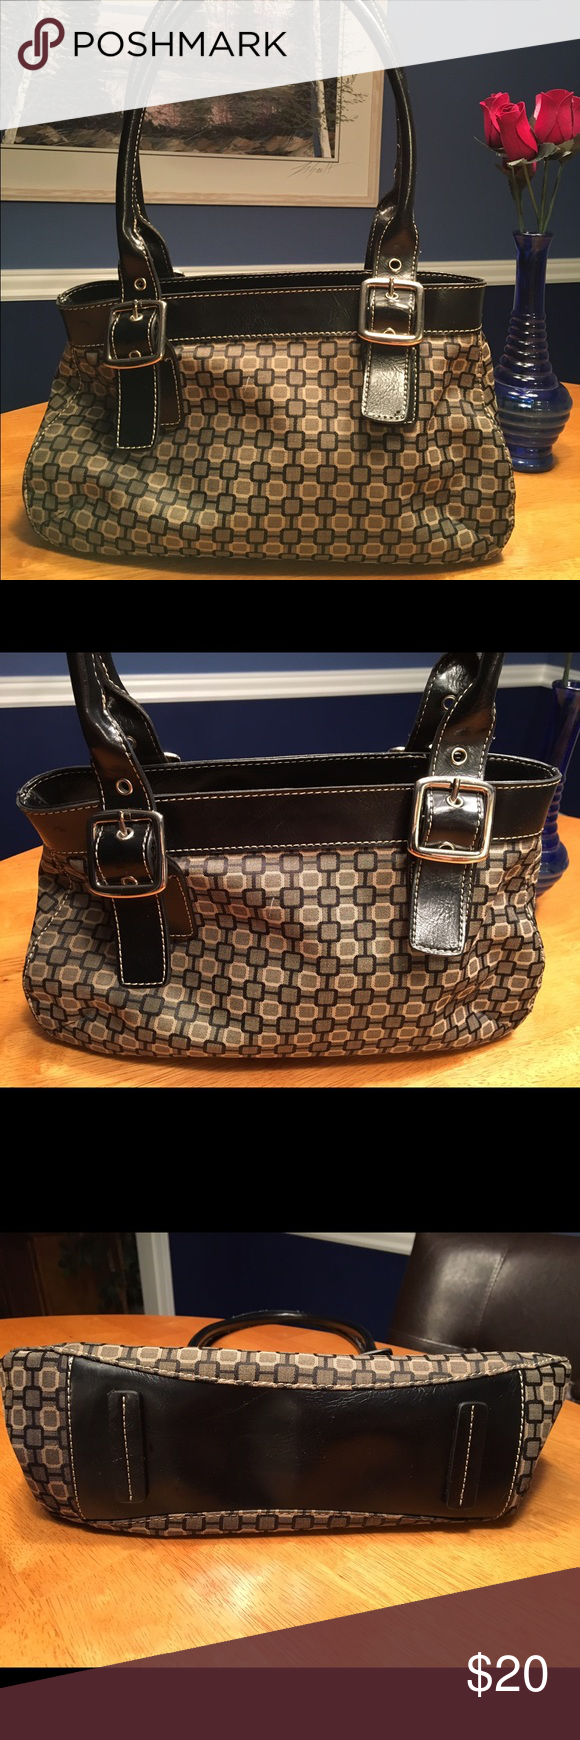 Nine West Purse Nine West medium size purse.  Black leather trim and straps with buckles. Fabric is black, cream with grey background. Classy looking purse that works with many outfits. Nine West Bags Shoulder Bags